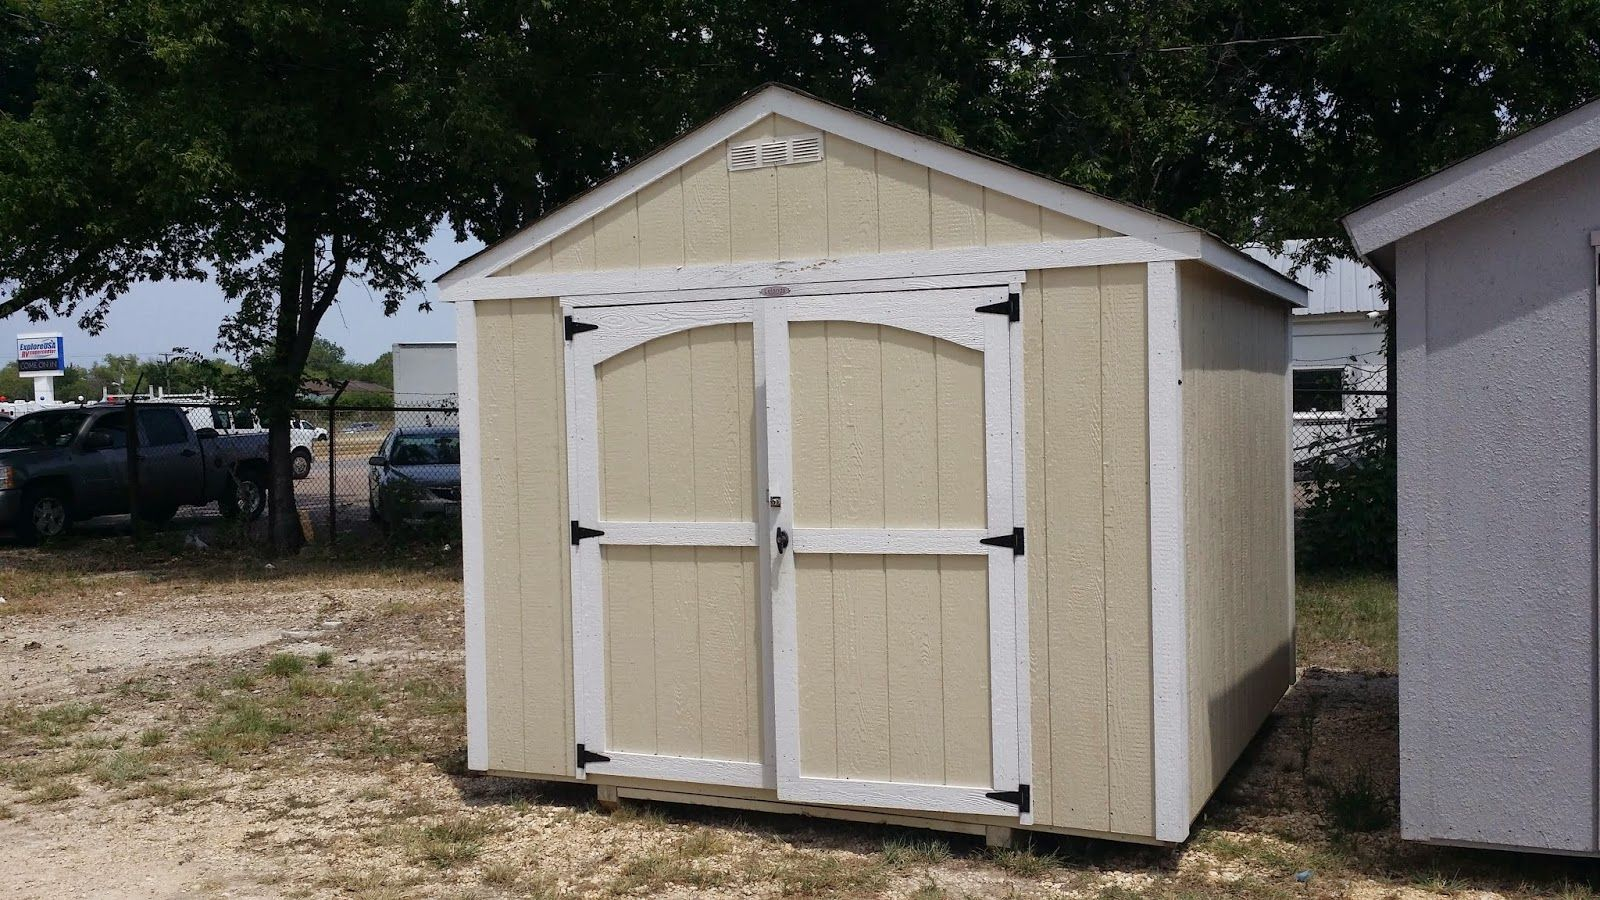 Ordinaire Fort Worth Lelandu0027s: Fort Worth Lelandu0027s Sheds Repo Specials.